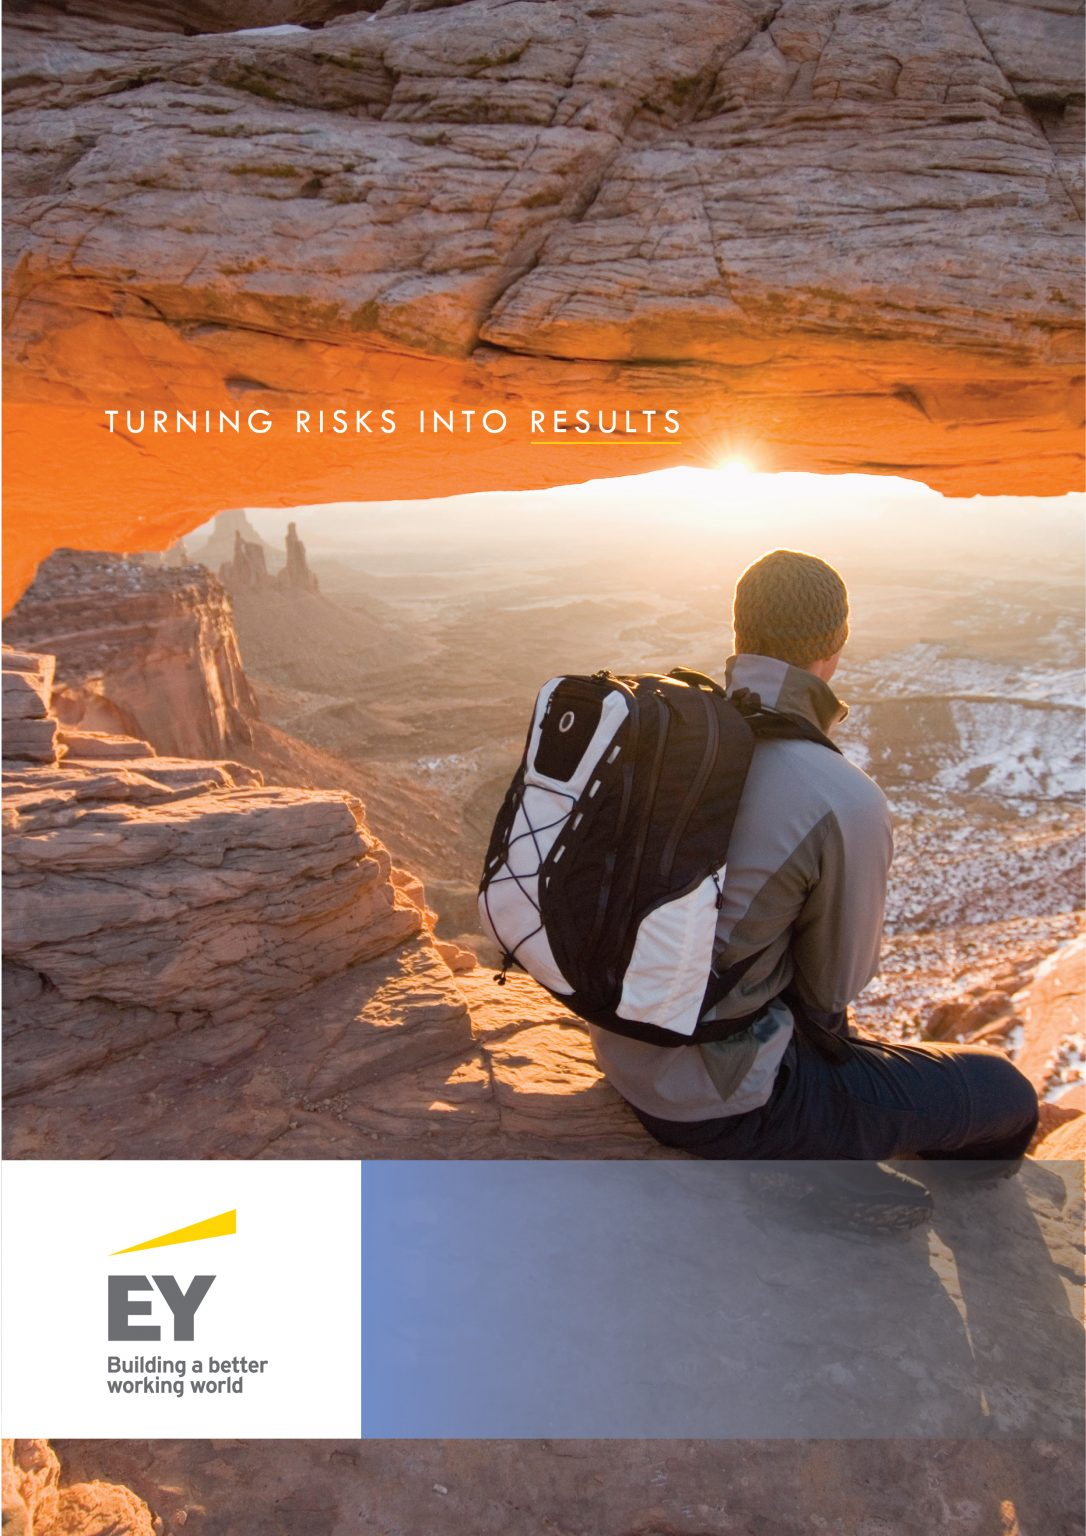 Ernst and young cover design (2)